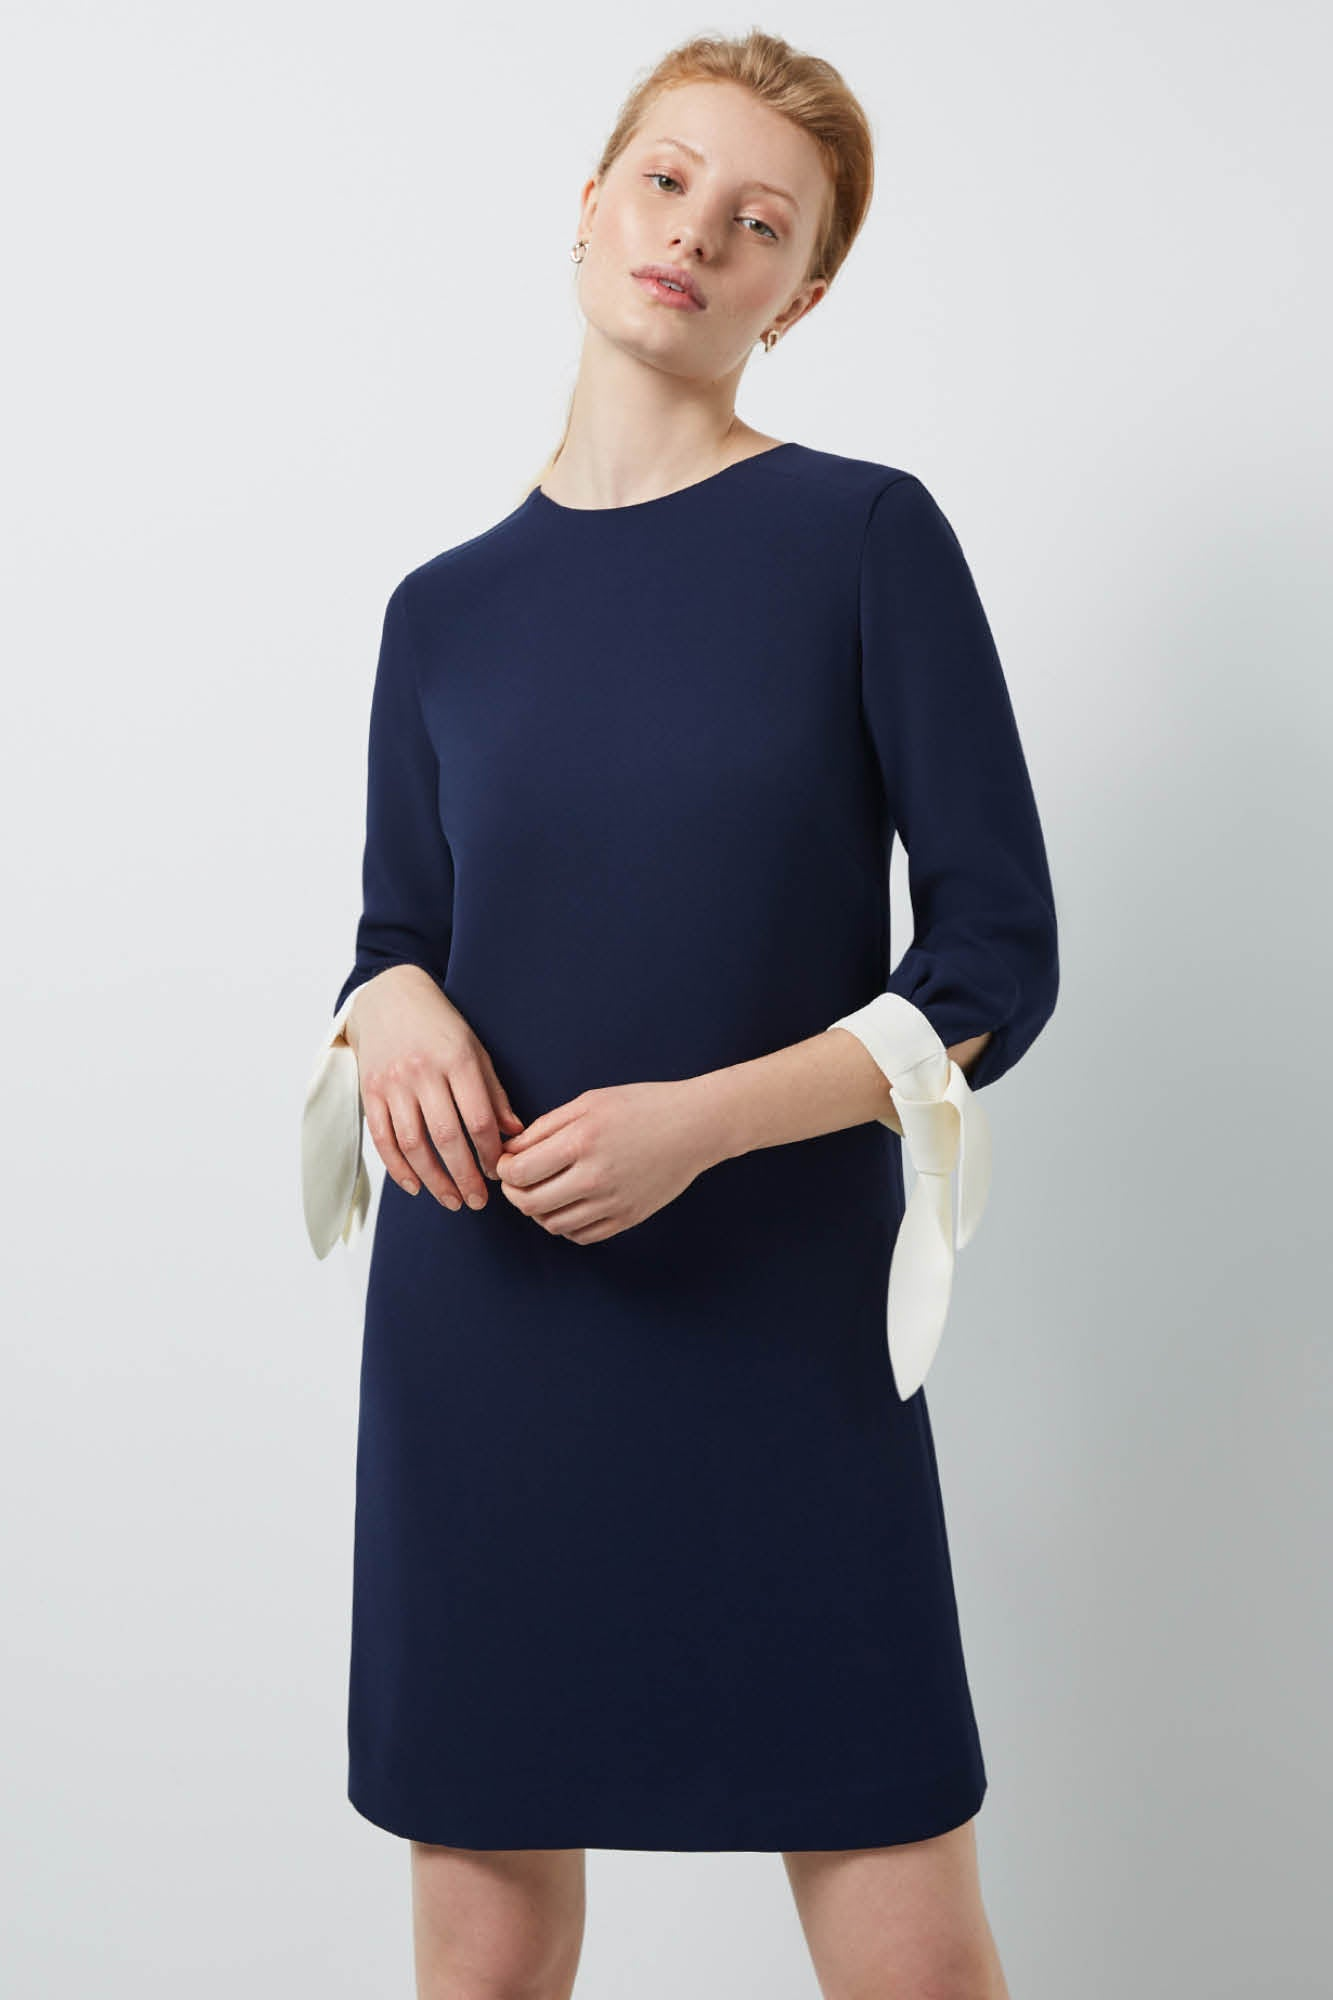 Padstow Navy and Cream Dress